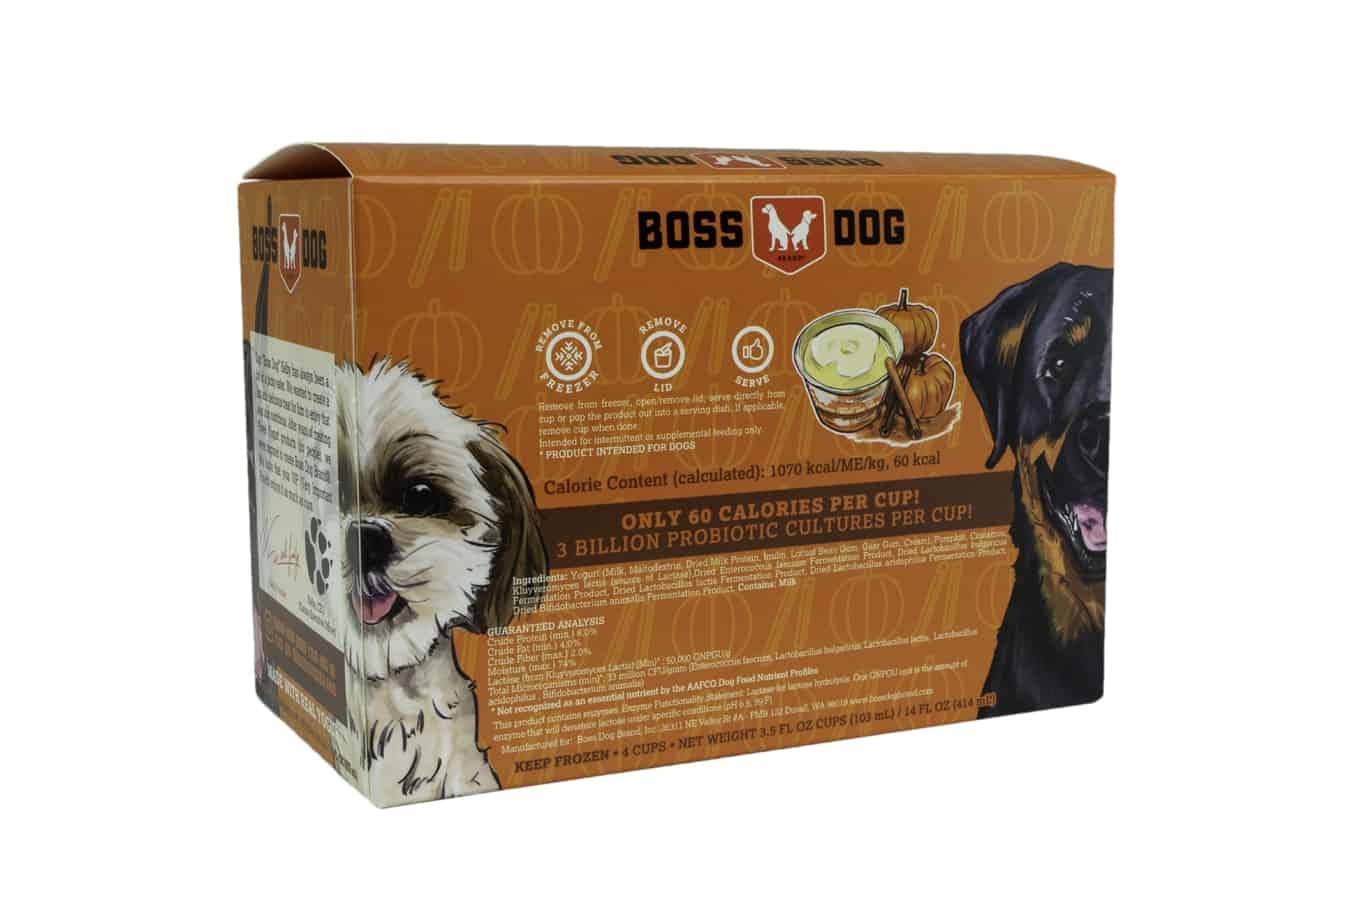 Boss Dog Boss Dog Greek Style Frozen Yogurt with Pumpkin and Cinnamon 3.5oz - 4 Pack